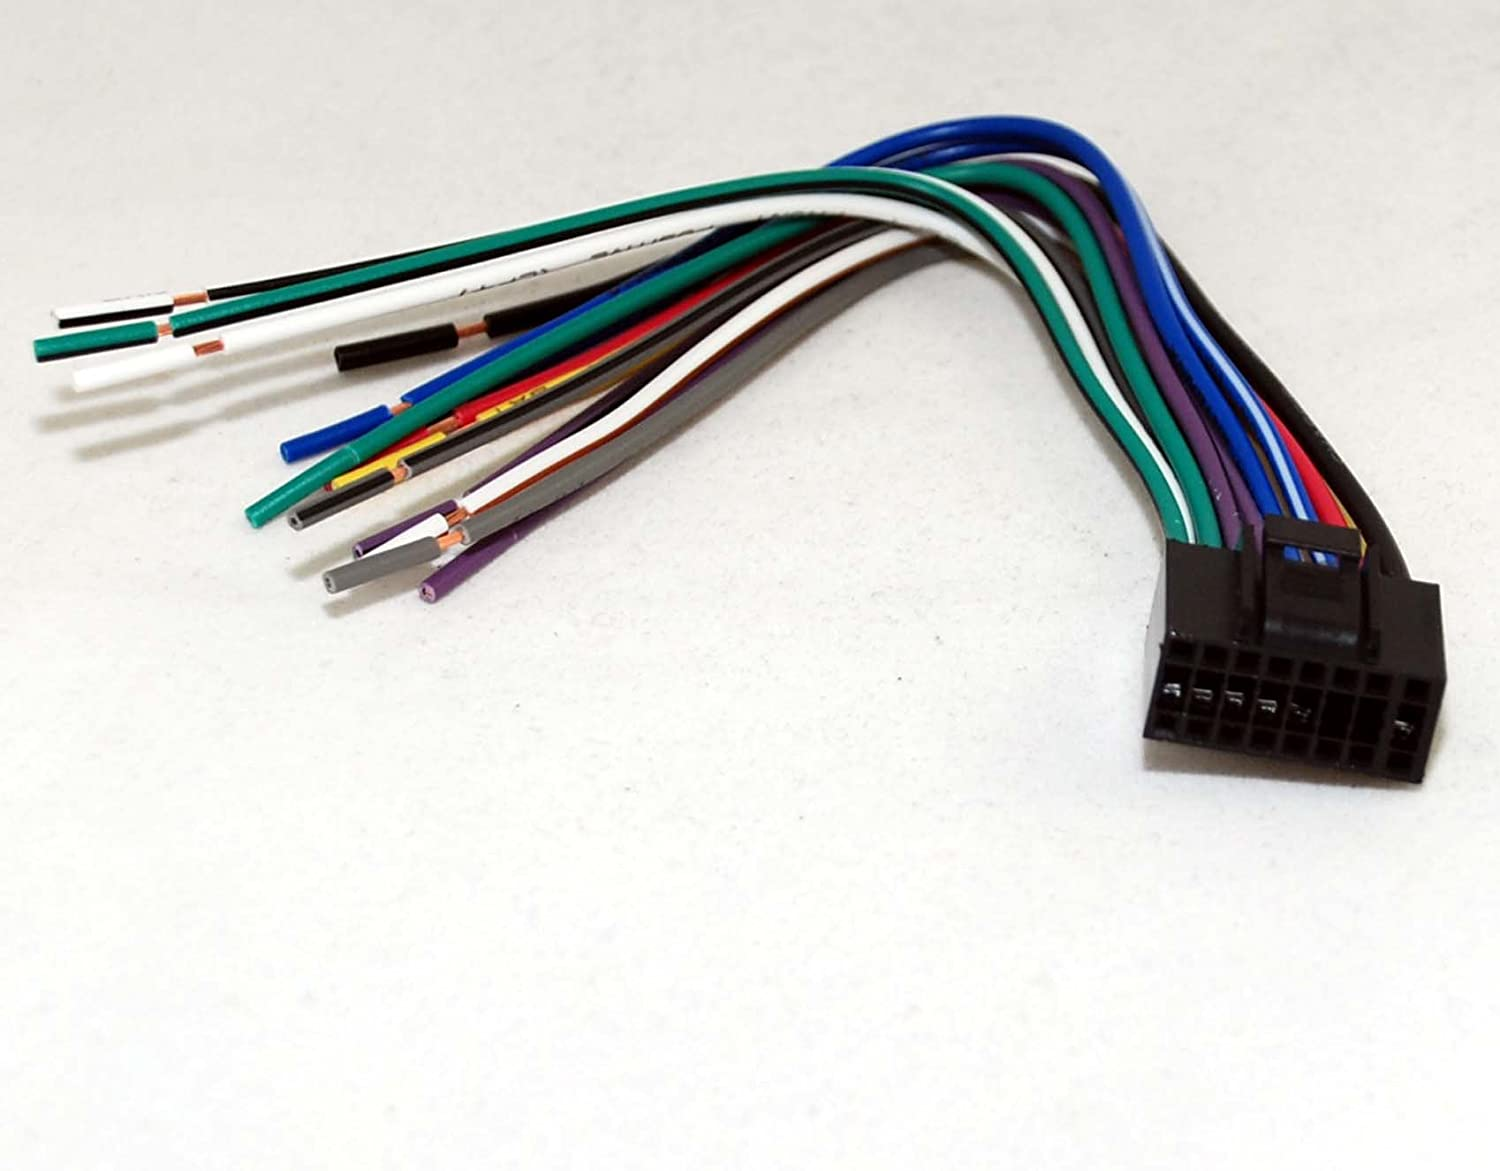 61Rzeblbo0L._SL1500_ amazon com xtenzi harness for dual 16 pin wire harness xdvd8181 dual car stereo wiring harness at aneh.co